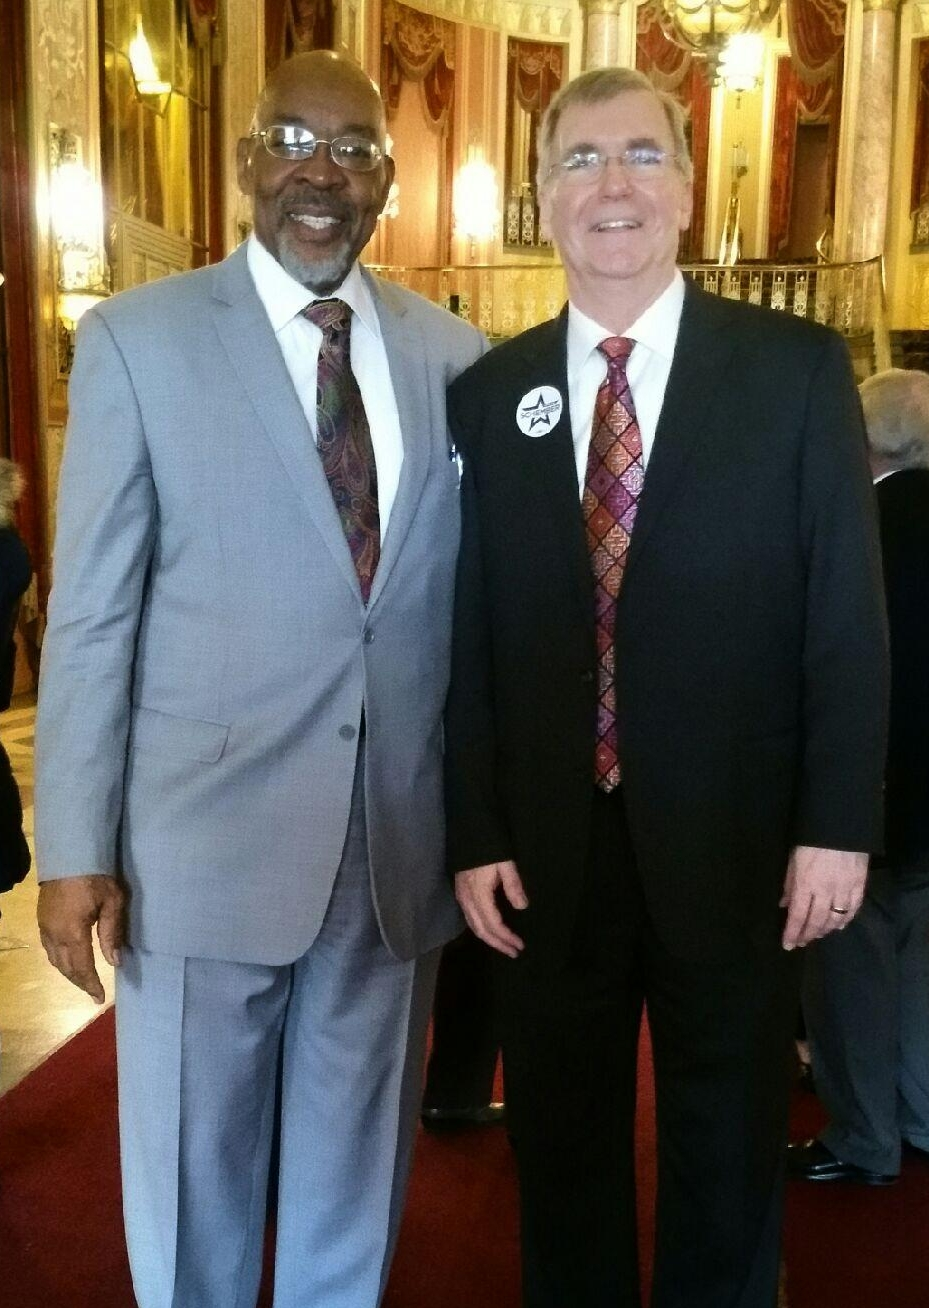 Erie City Councilman Mel Witherspoon is fully supporting Joe Schember for Mayor